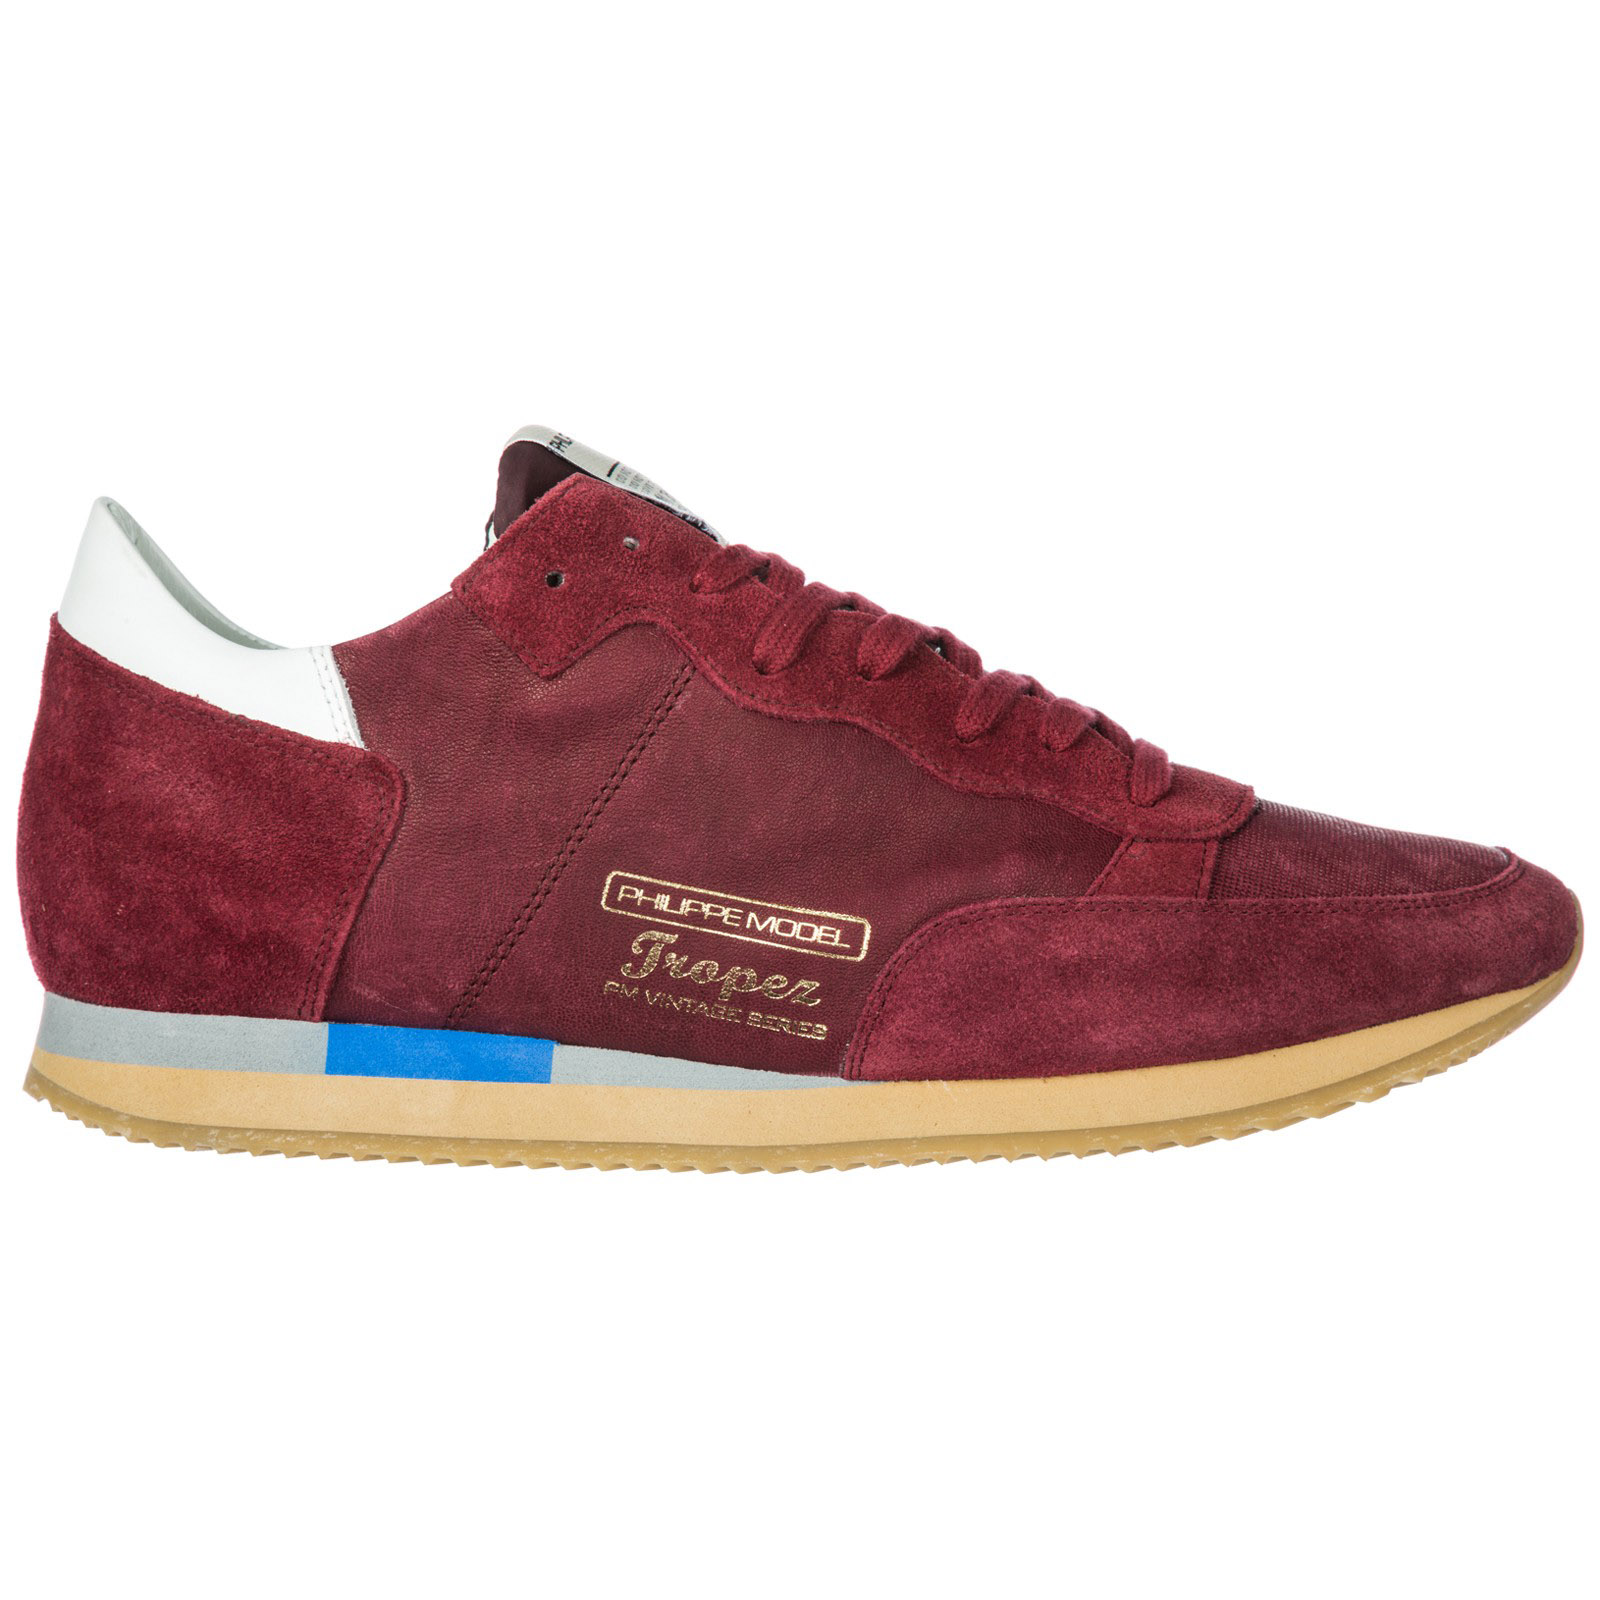 Sneakers Model Philippe A18itvluww05 Bordeaux Philippe Sneakers 0nwOkP